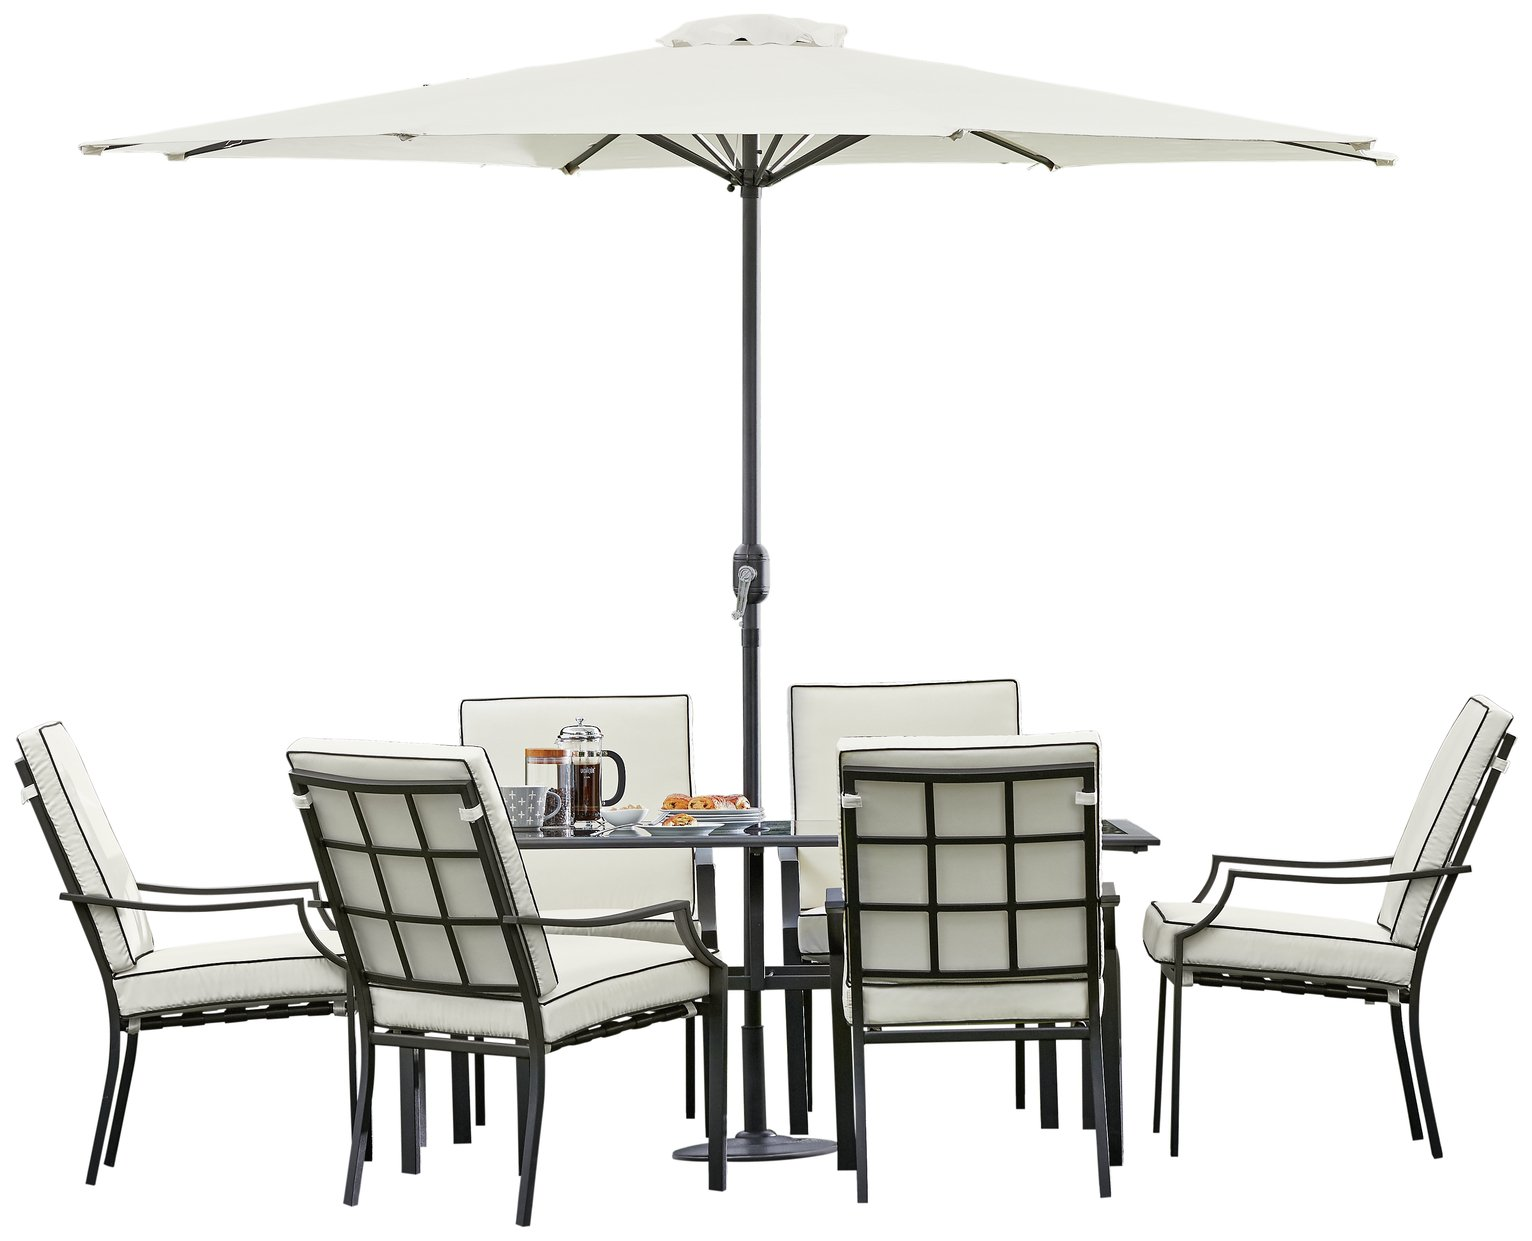 Collection Barcelona 6 Seater Patio Furniture Set